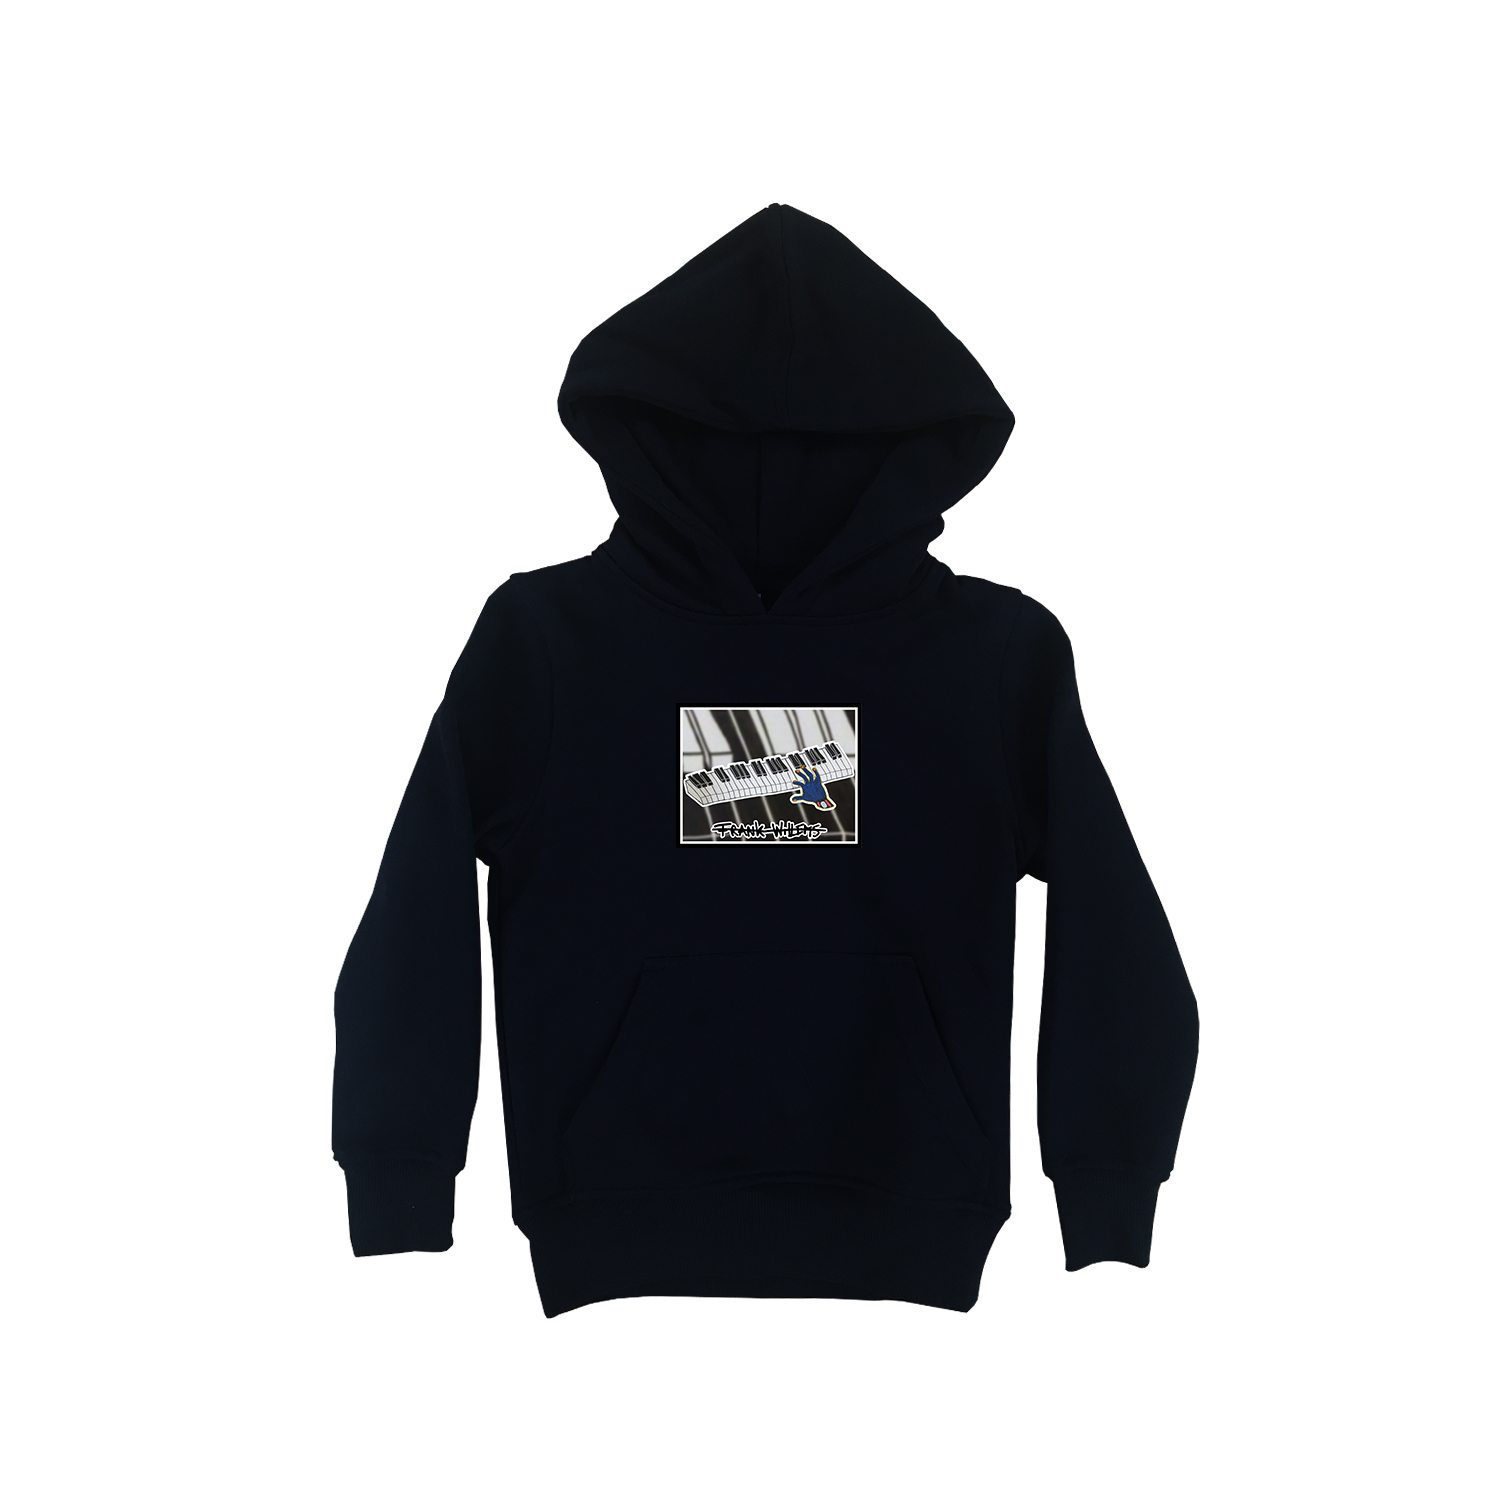 Kids Hoodie black - ONE PRESS CLOSER TO MUSIC - Frank Willems